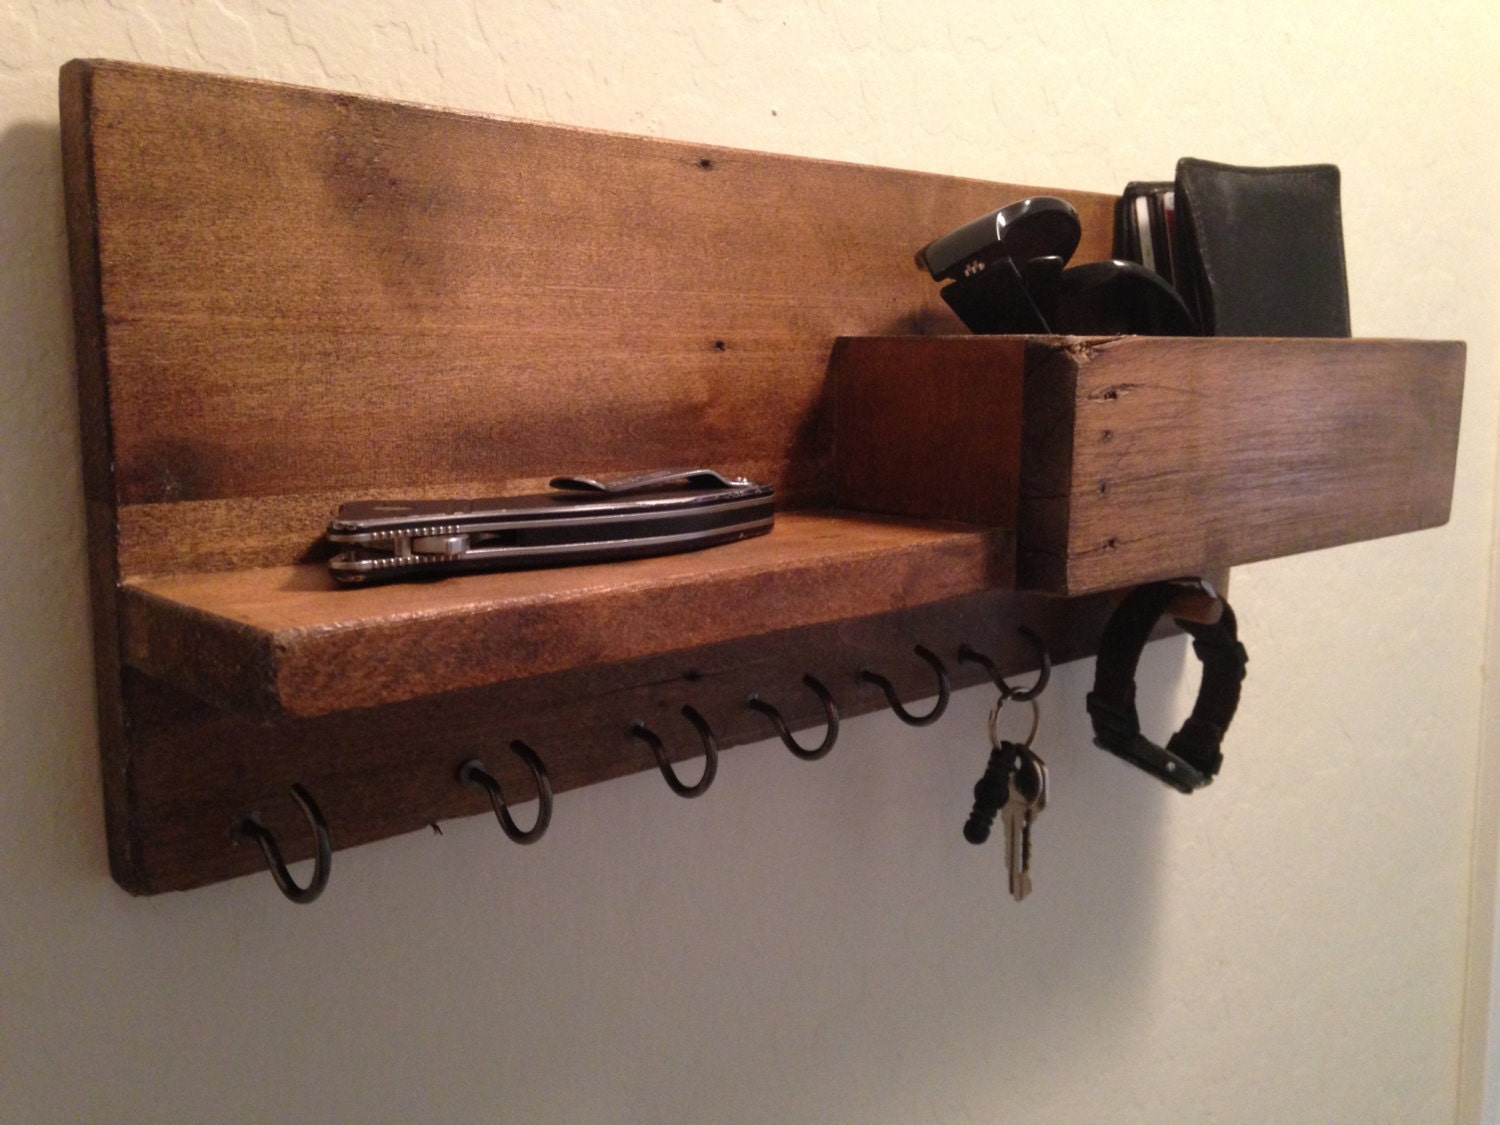 how to add auskey holder